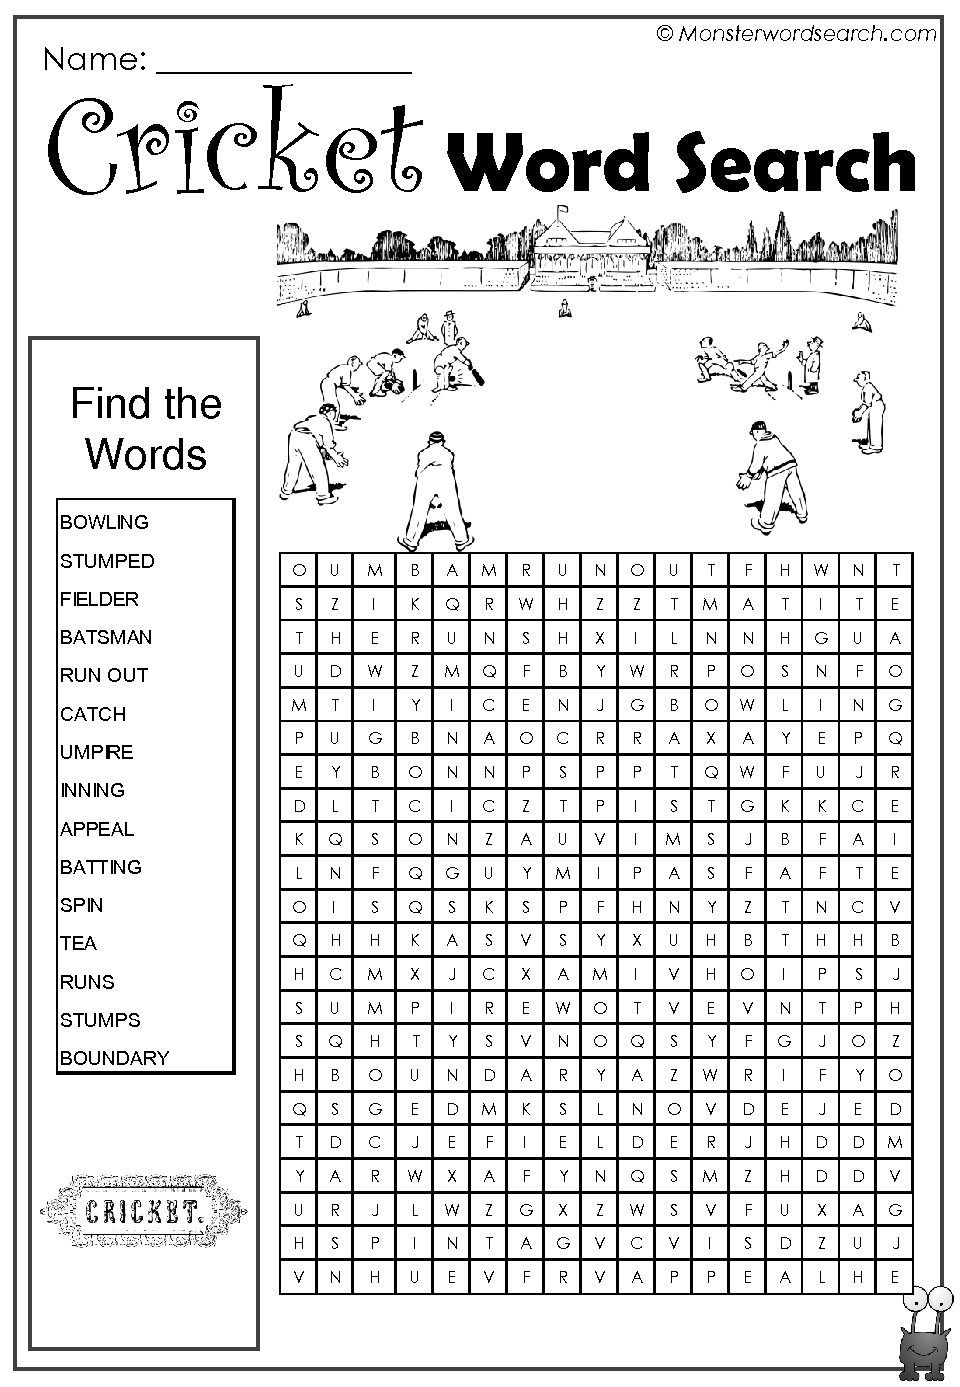 Awesome Cricket Word Search | Word Search | Cricket, Word Games - Crossword Puzzles Printable 1980S